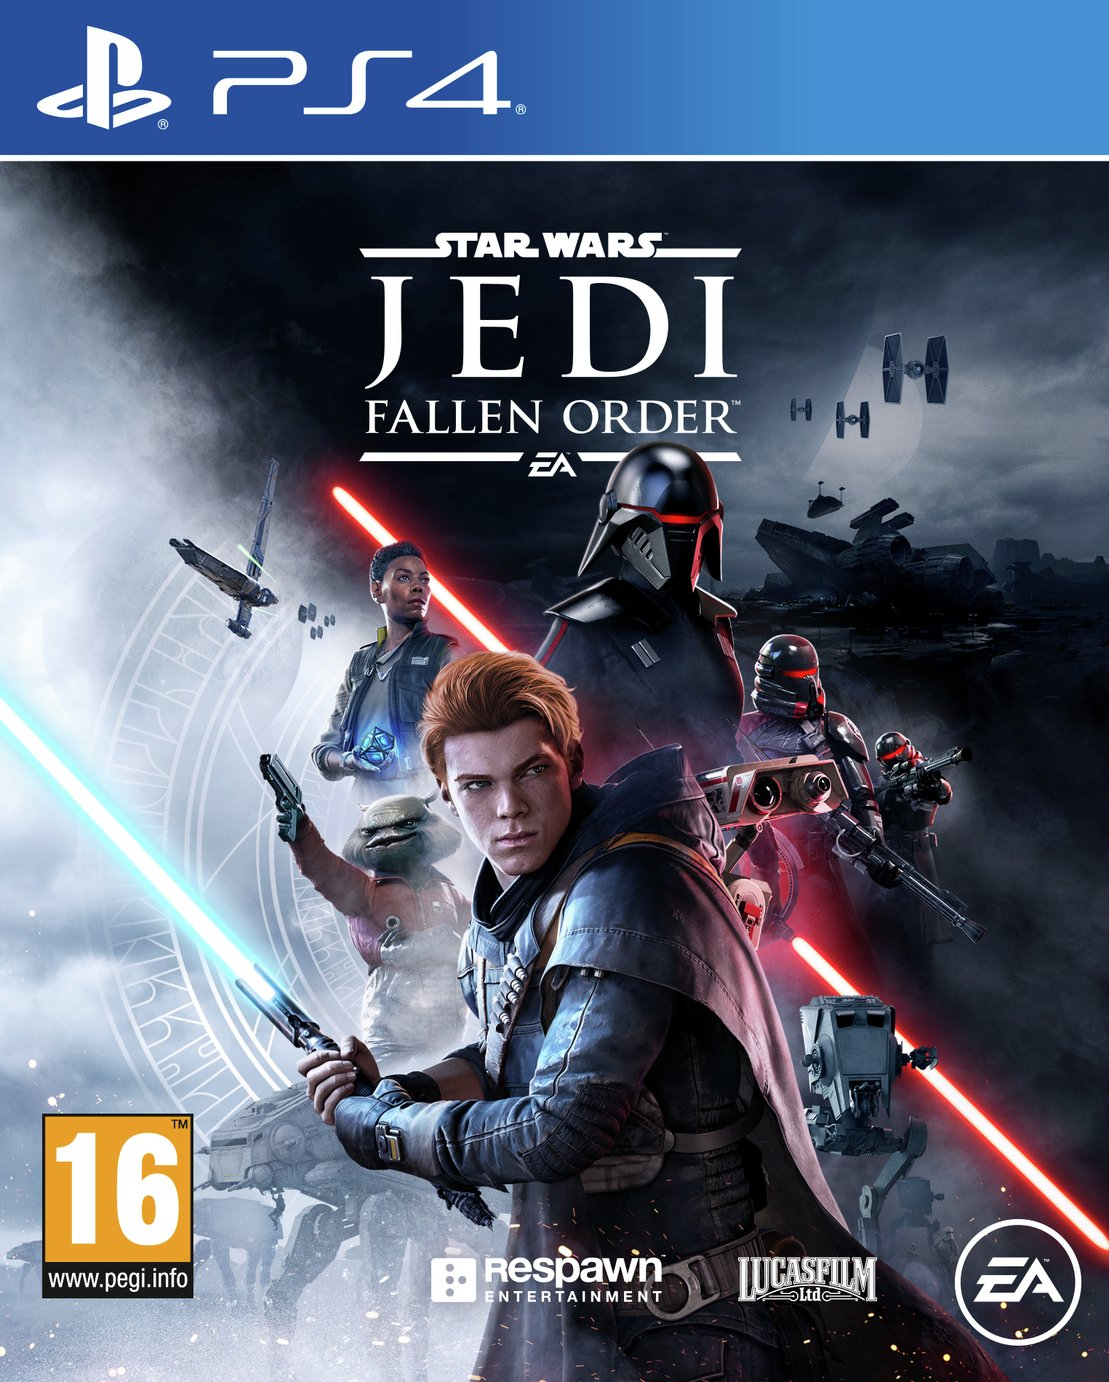 Star Wars Jedi Fallen Order PS4 Pre-Order Game from Star Wars